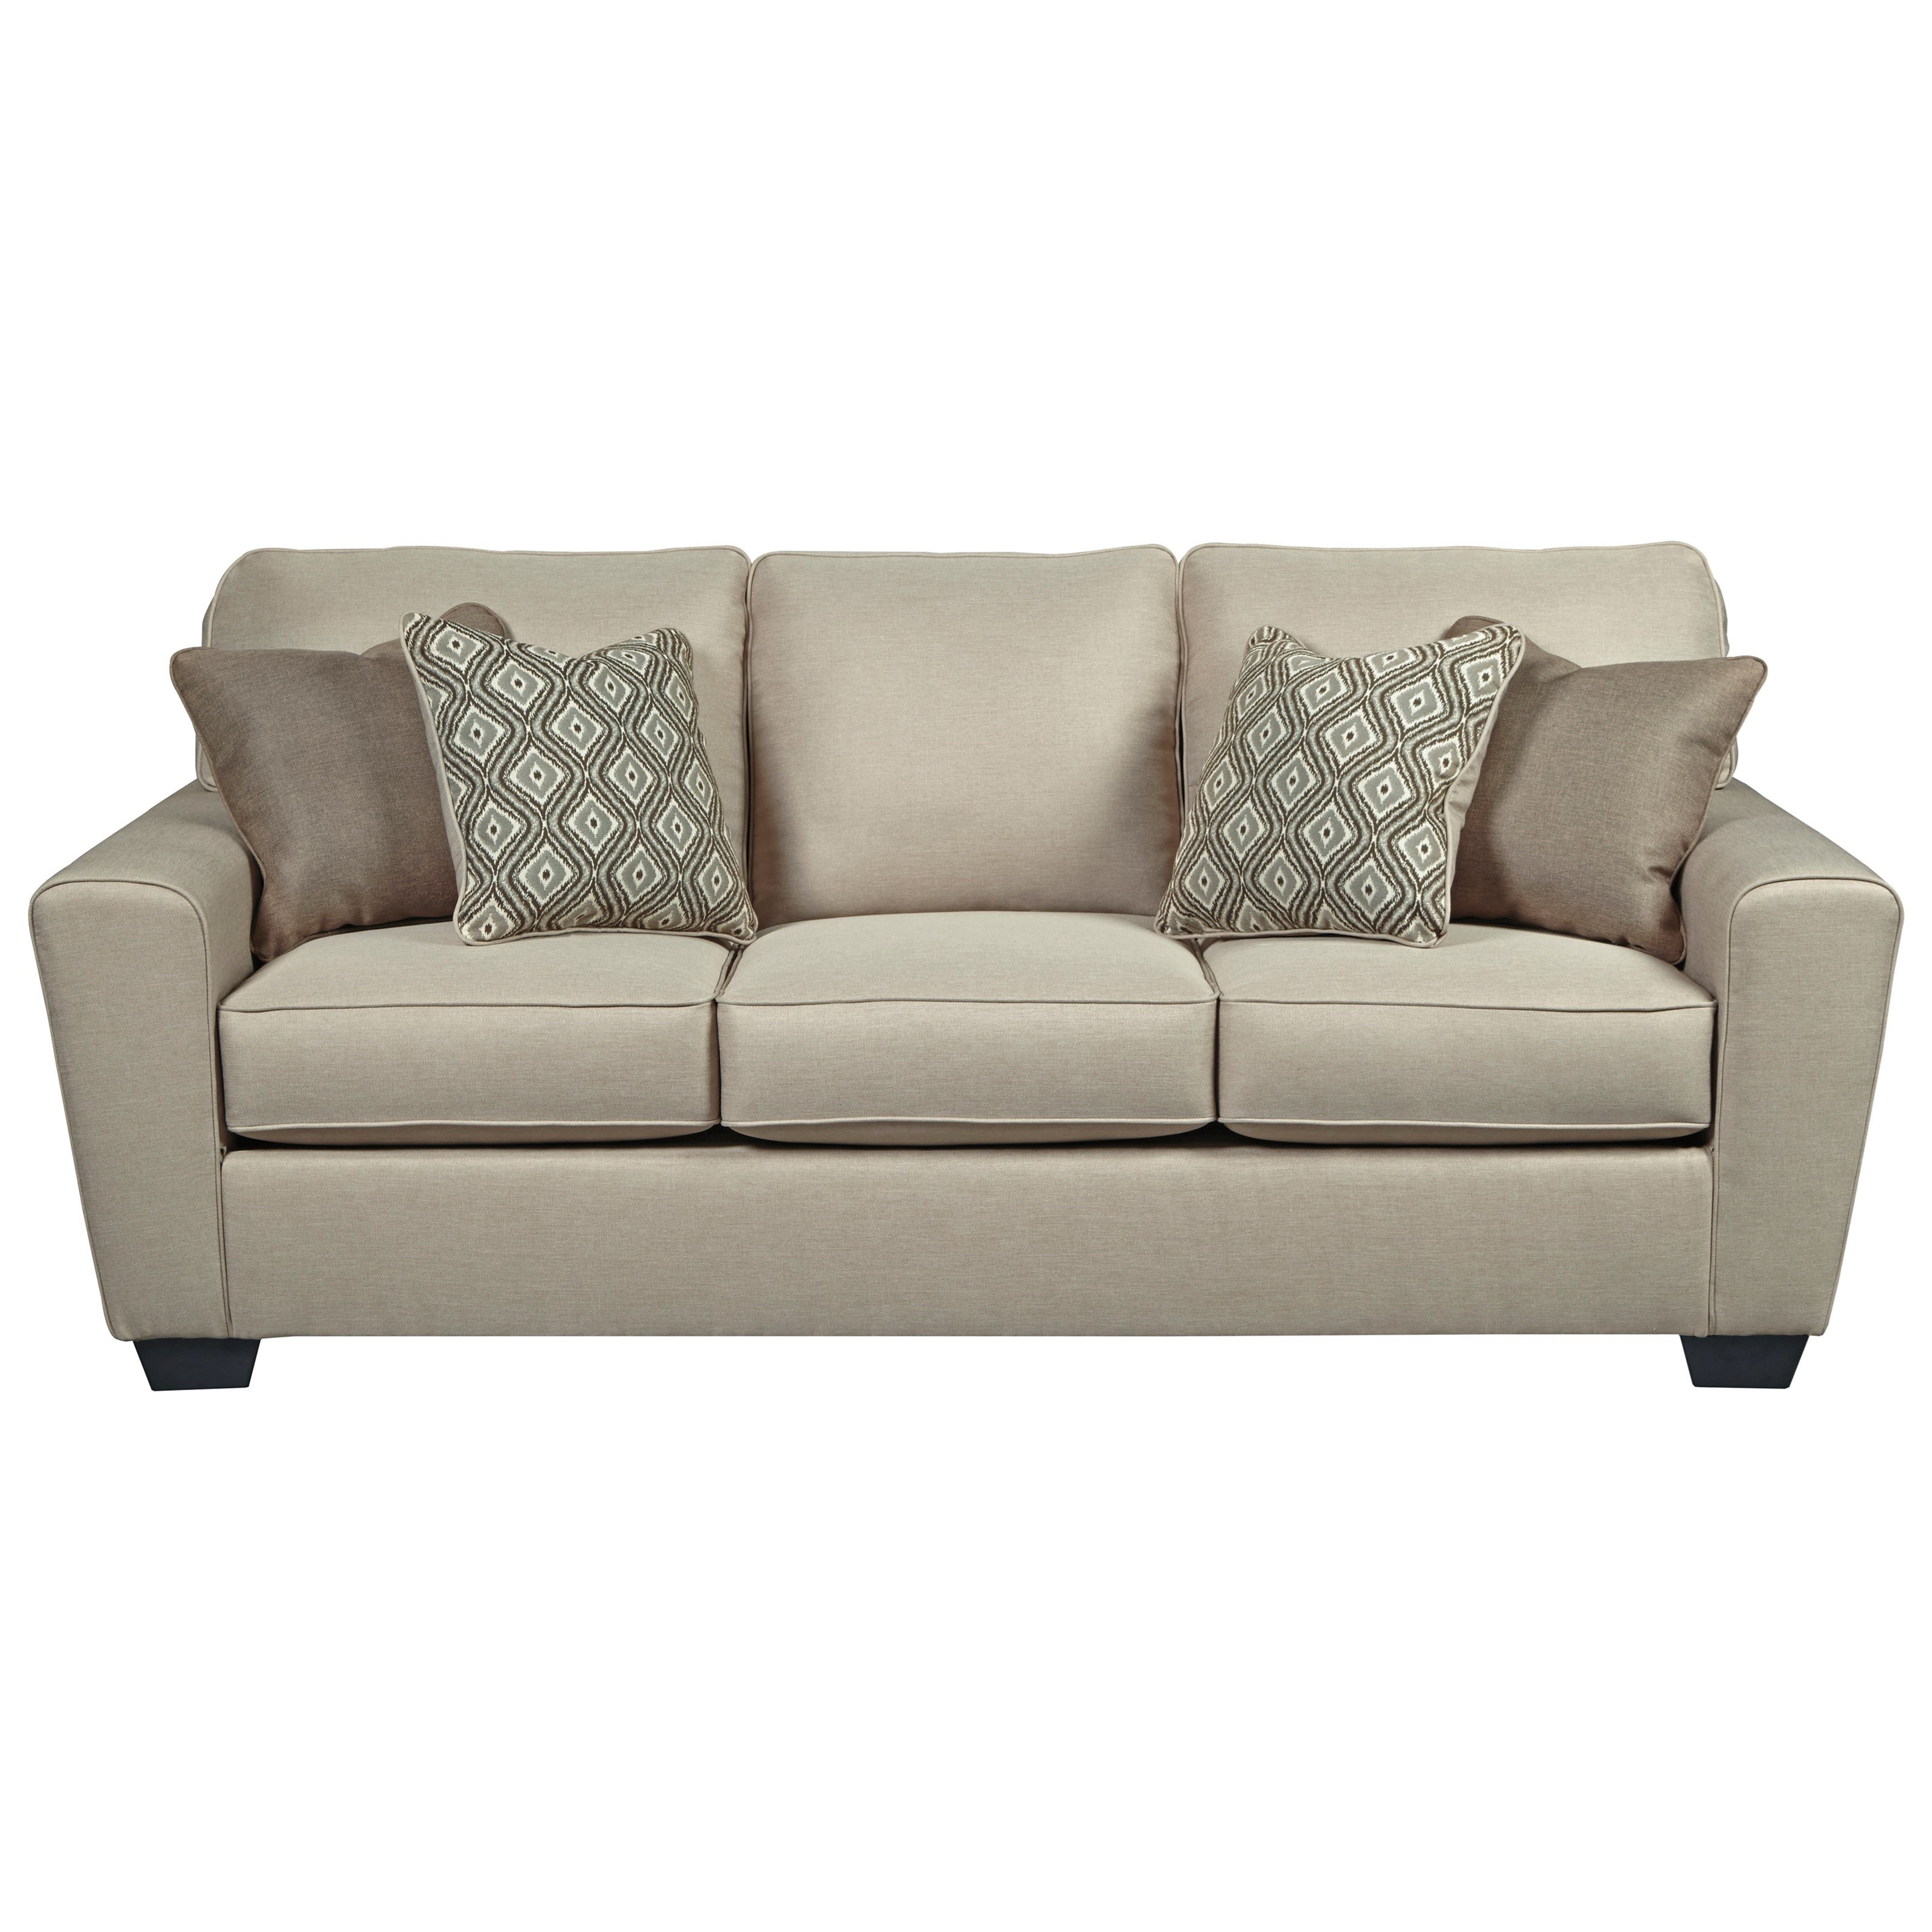 Furniture By Ashley: Benchcraft By Ashley Calicho Contemporary Sofa